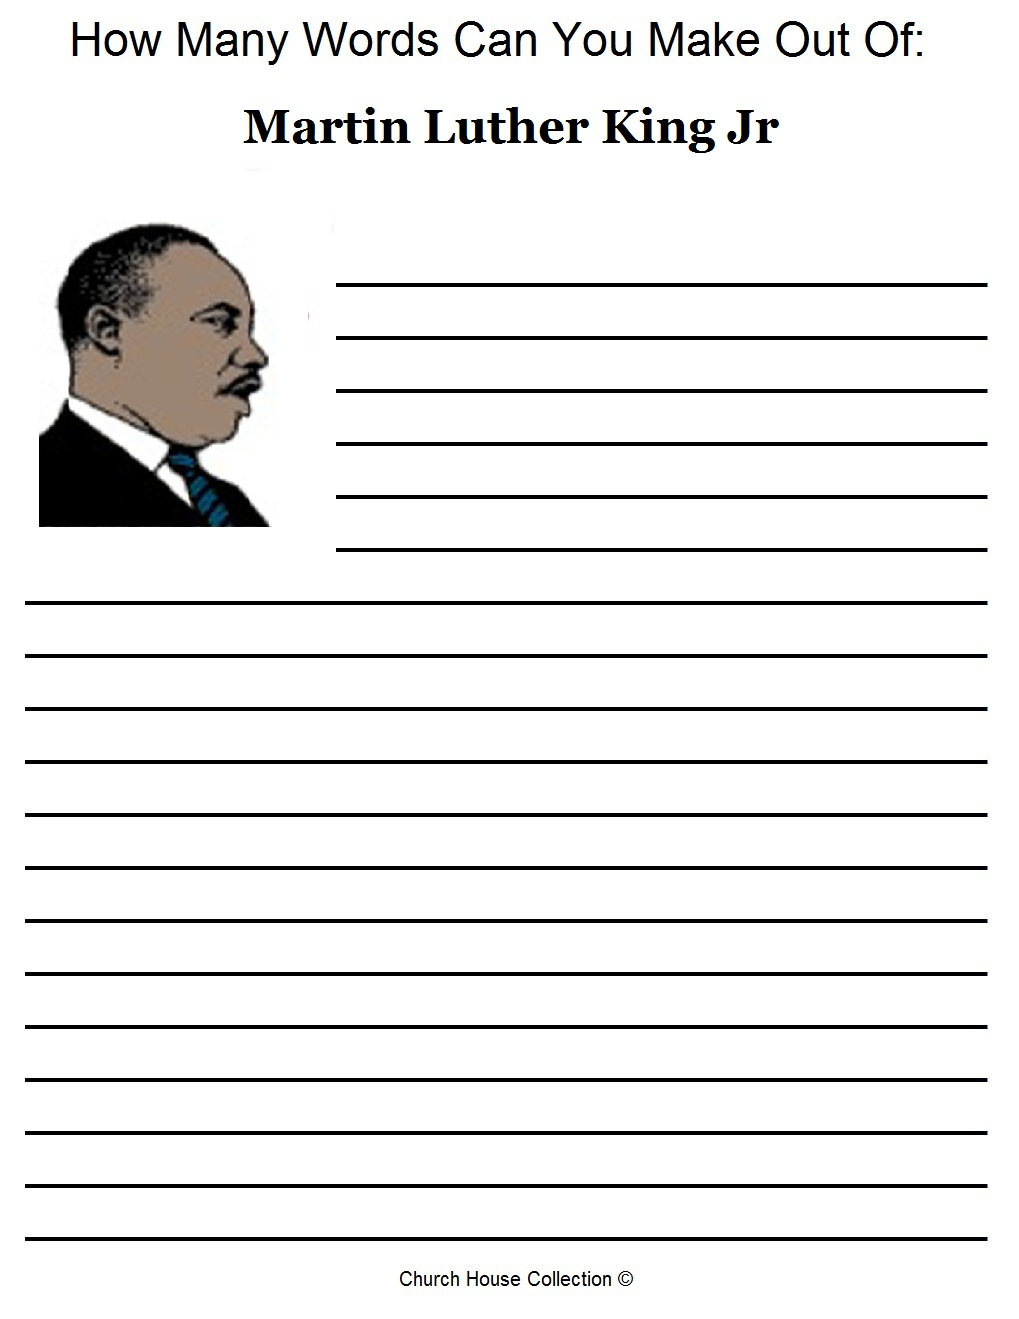 Church House Collection Blog: Free Martin Luther King Jr Worksheets | Free Printable Martin Luther King Jr Worksheets